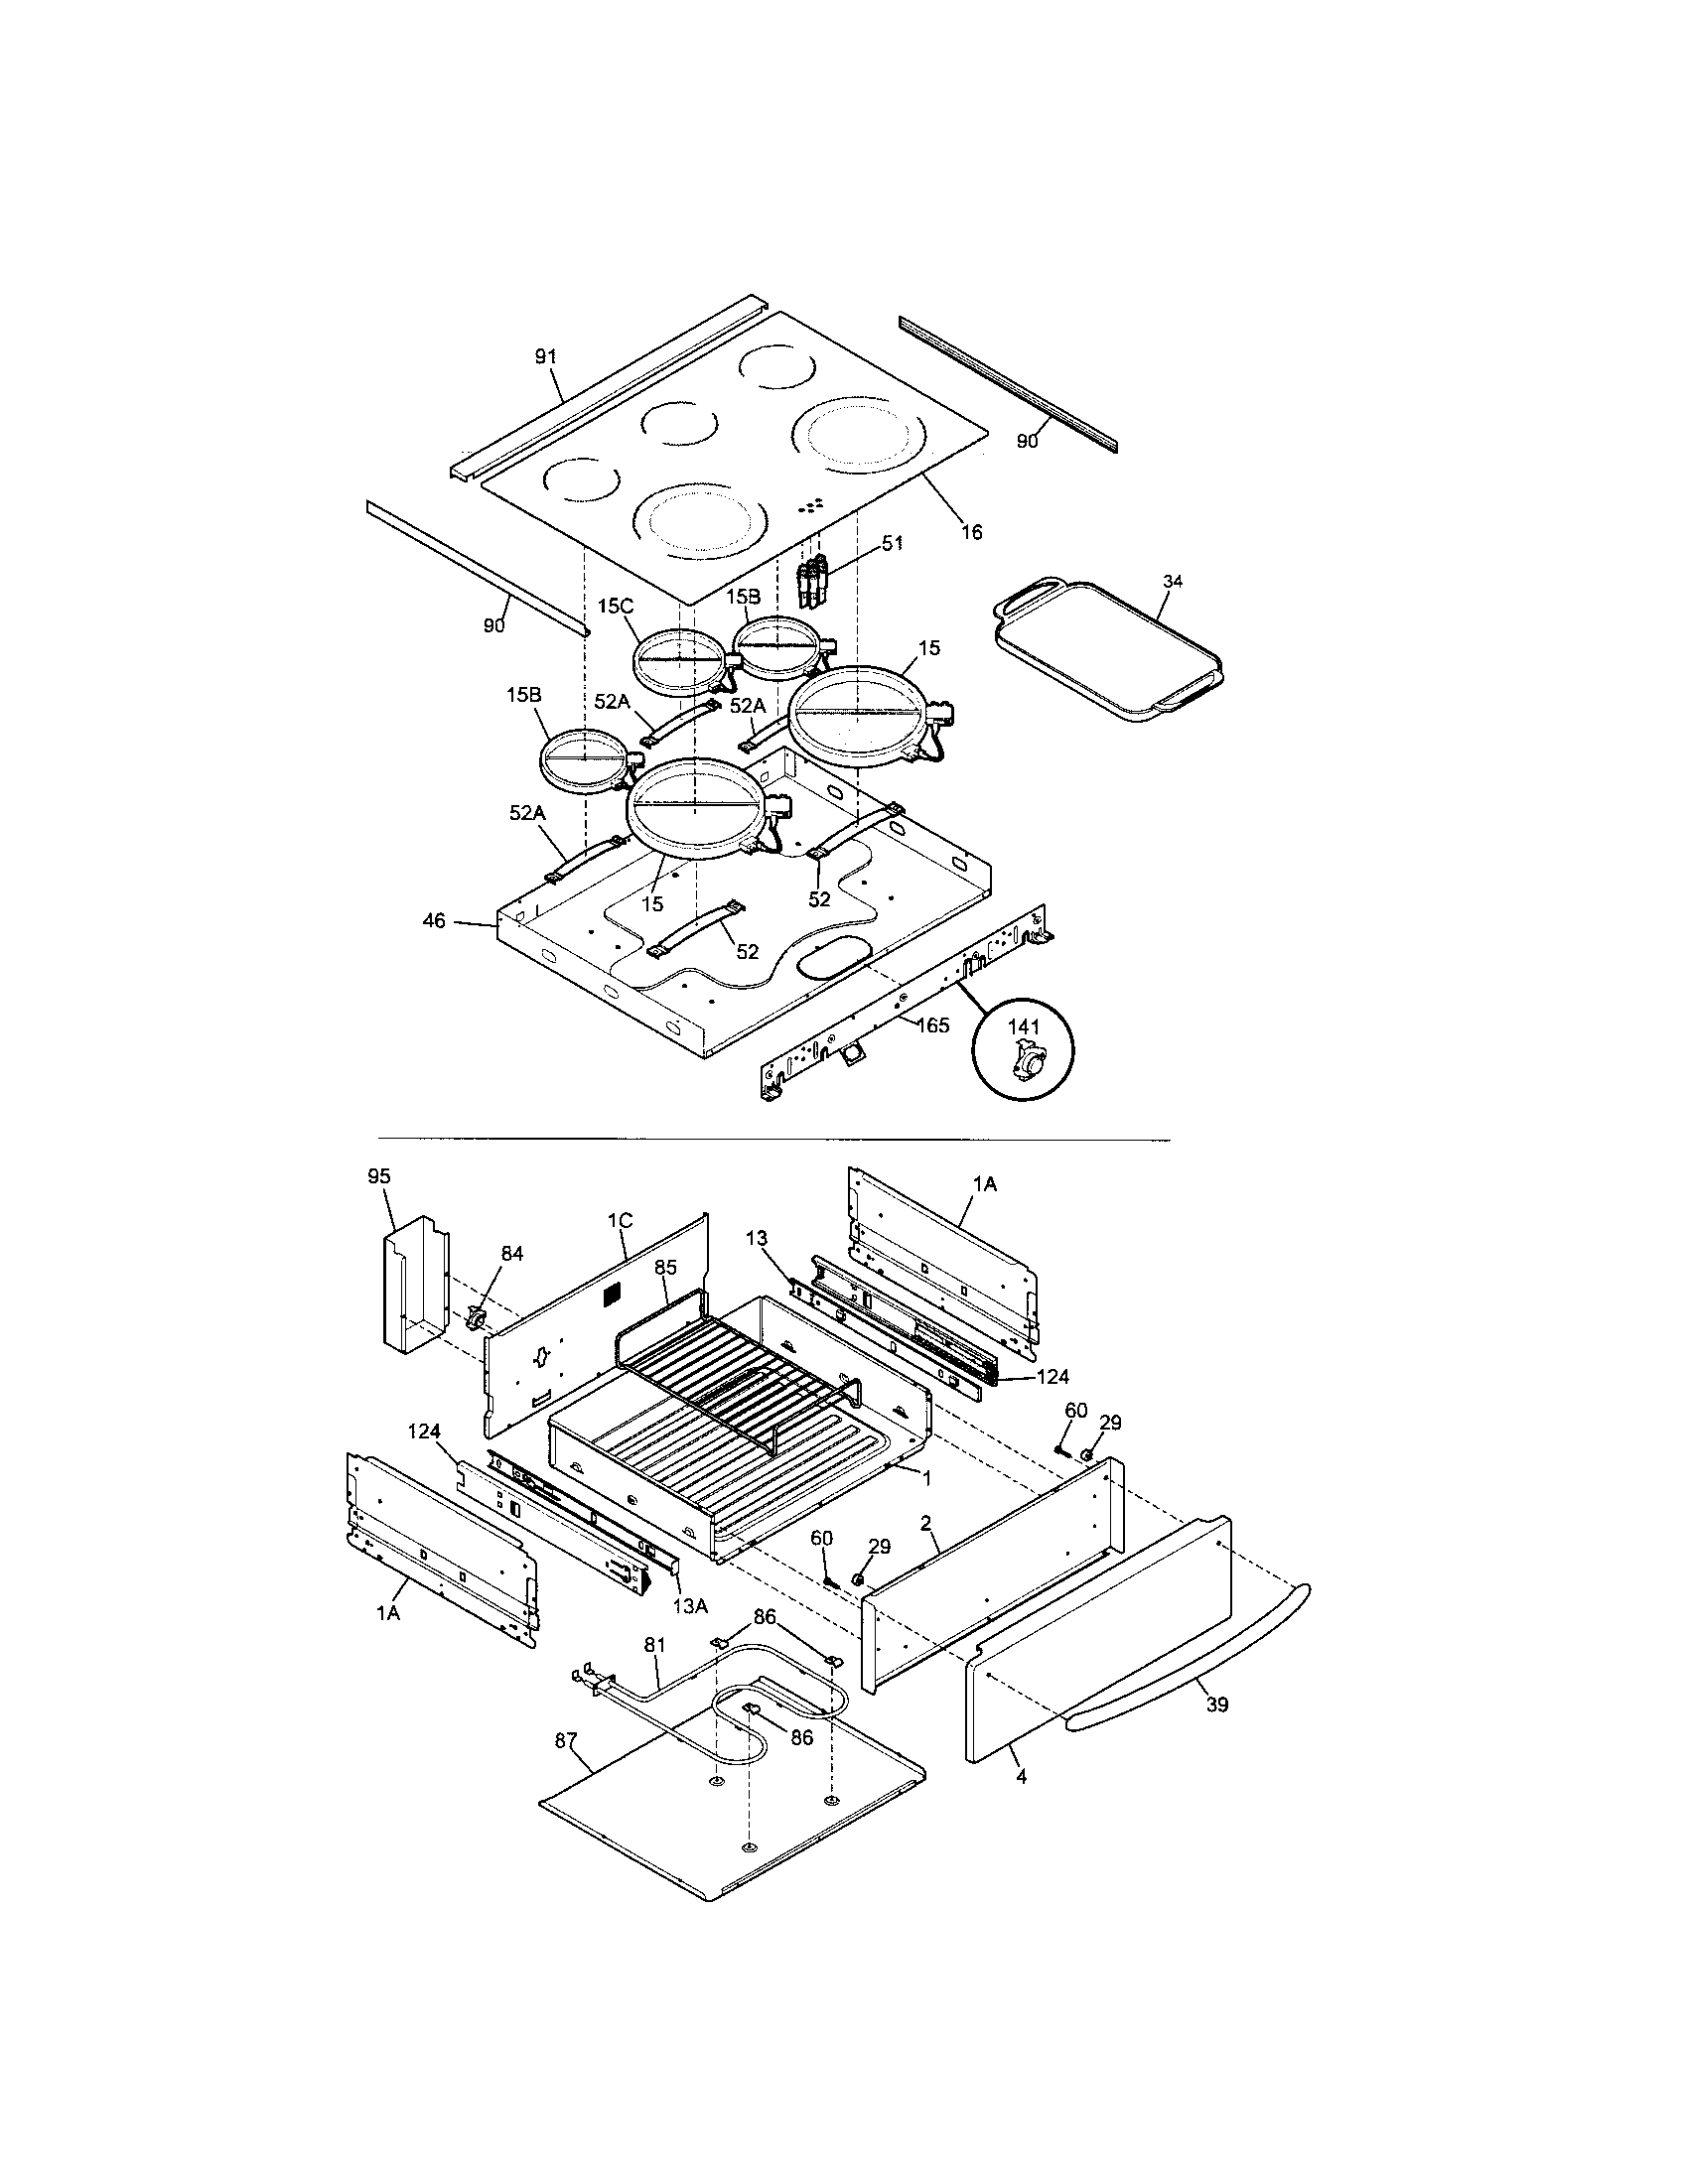 Kenmore Elite 79046703606 top/drawer diagram